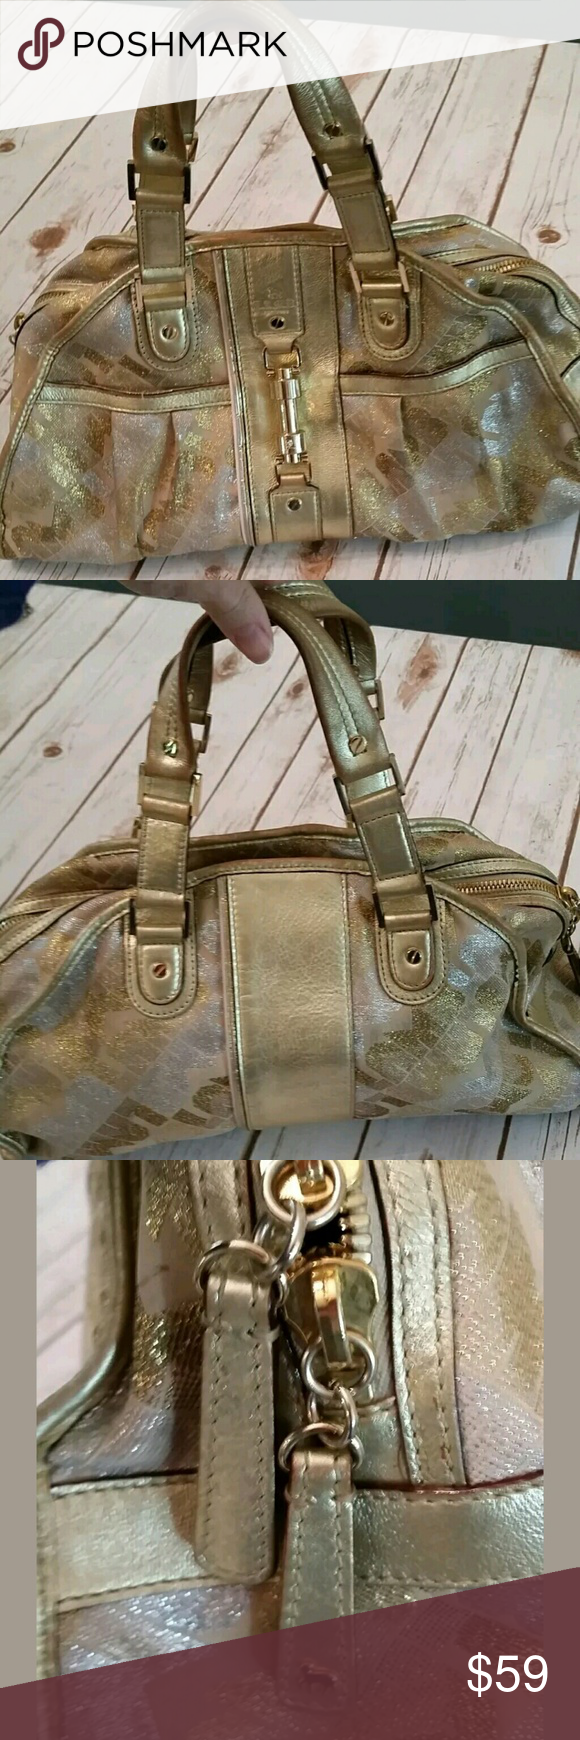 Price Drop L A M B Purse Excellent Used Condition Lamb Bag No Holes Or Stains